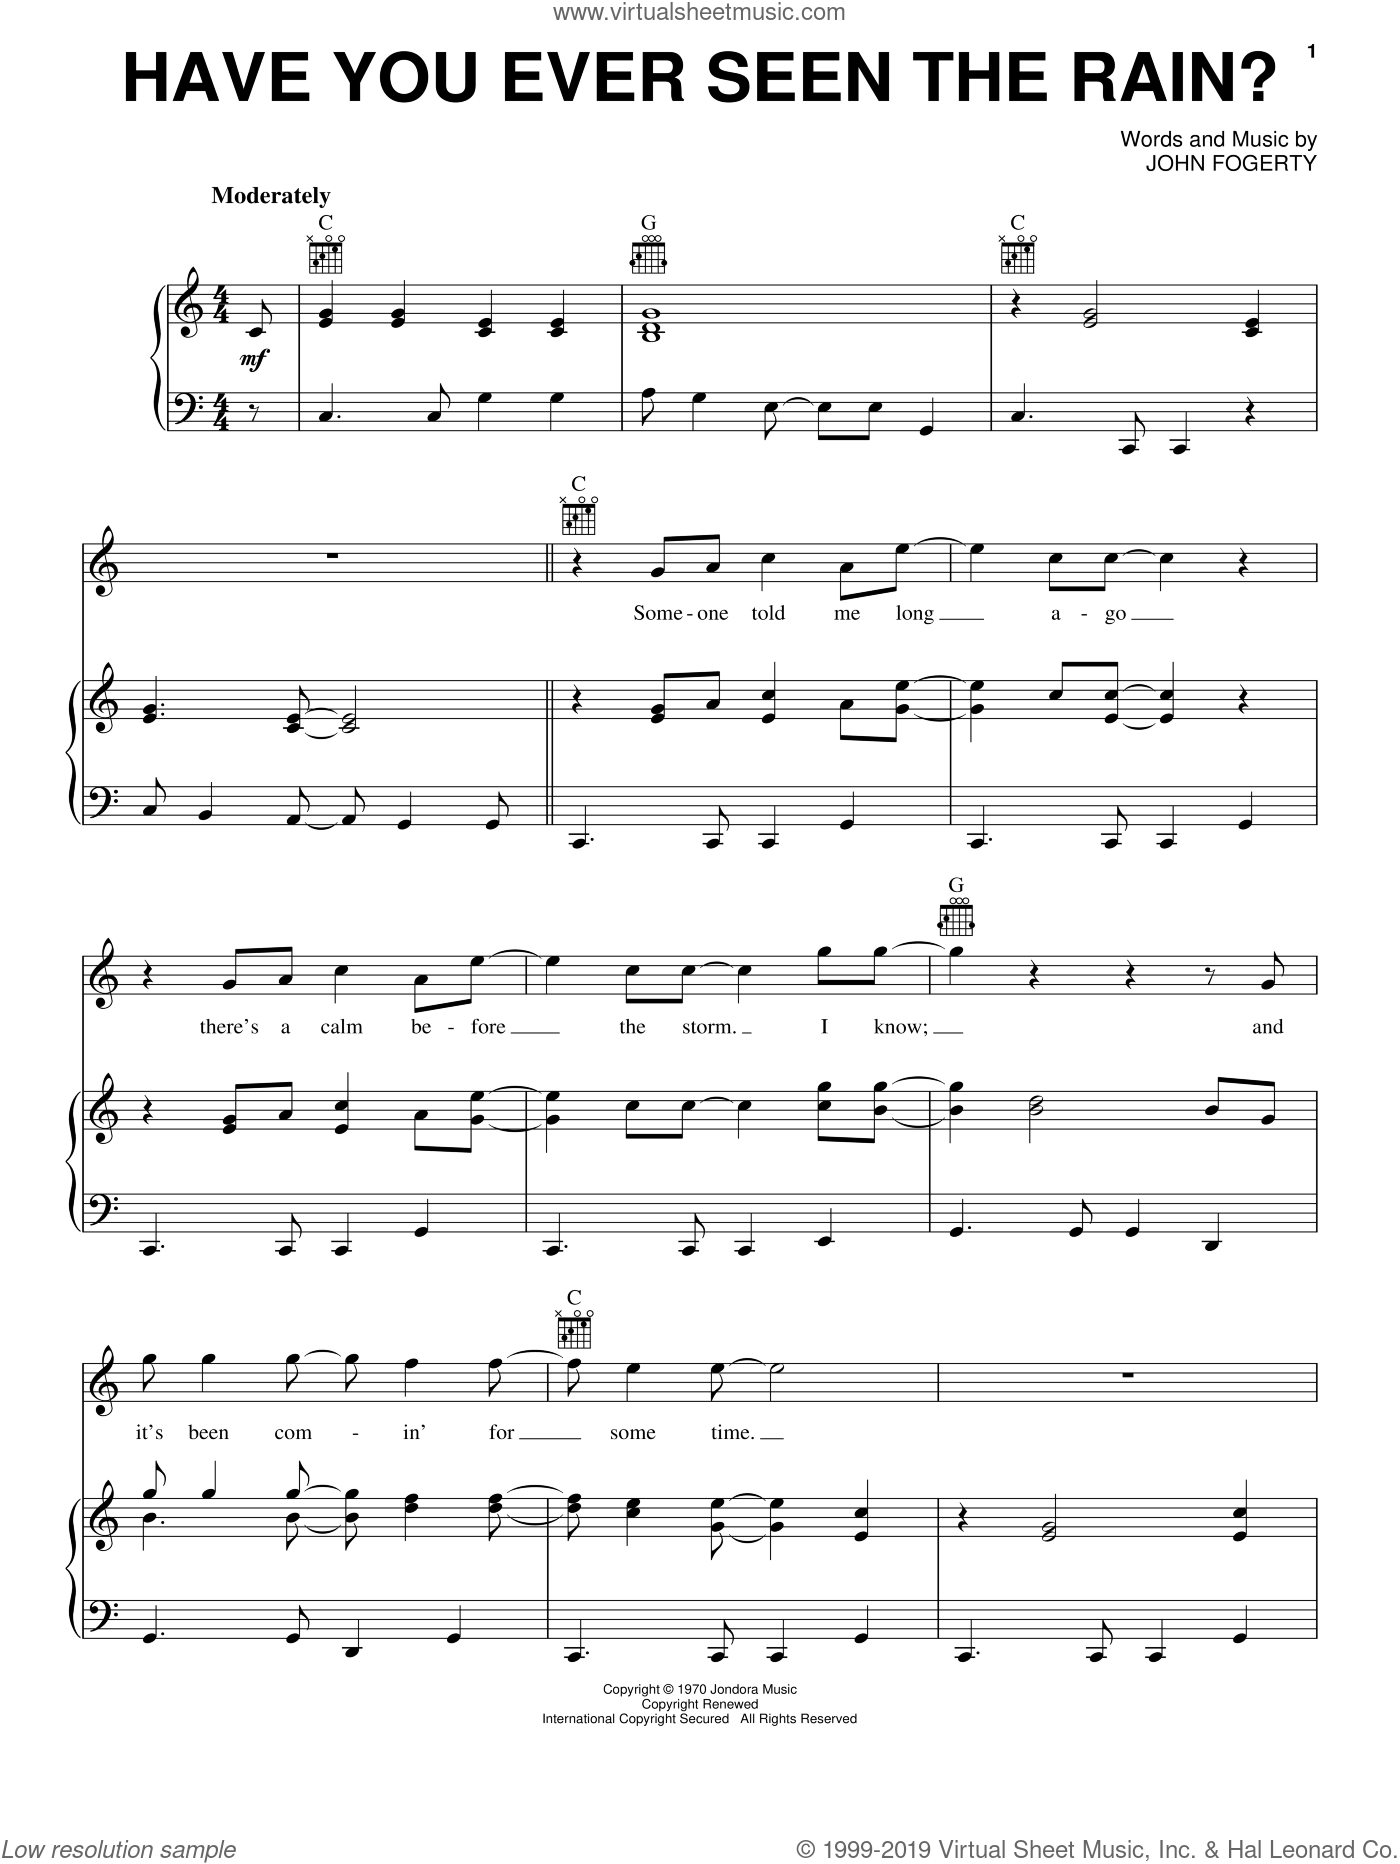 Have You Ever Seen The Rain? sheet music for voice, piano or guitar by John Fogerty and Creedence Clearwater Revival. Score Image Preview.